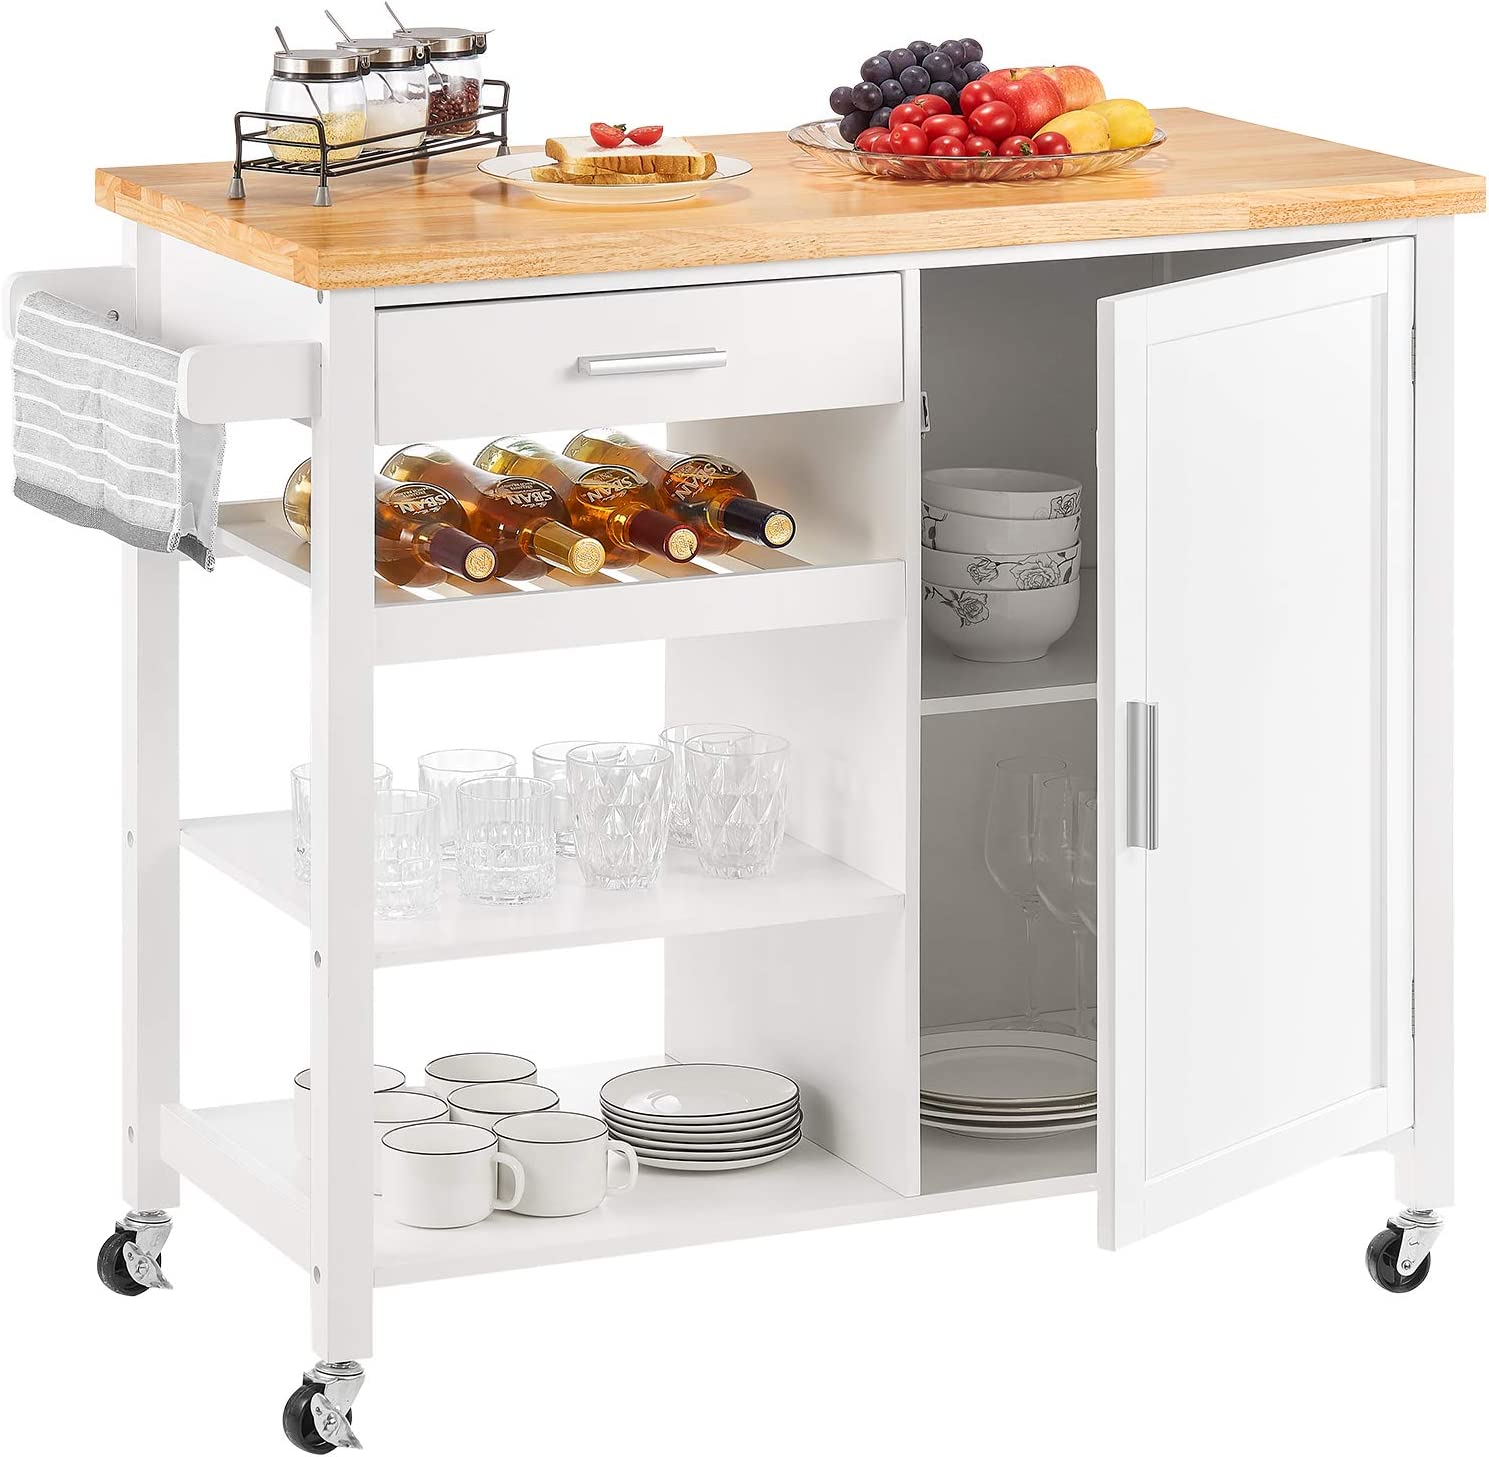 Kealive Kitchen Island on Wheels Rolling Kitchen Island with Storage,  Wooden Mobile Island for Home Style, Wood Top Drawer Handle Rack, Brown  9.9L x ...